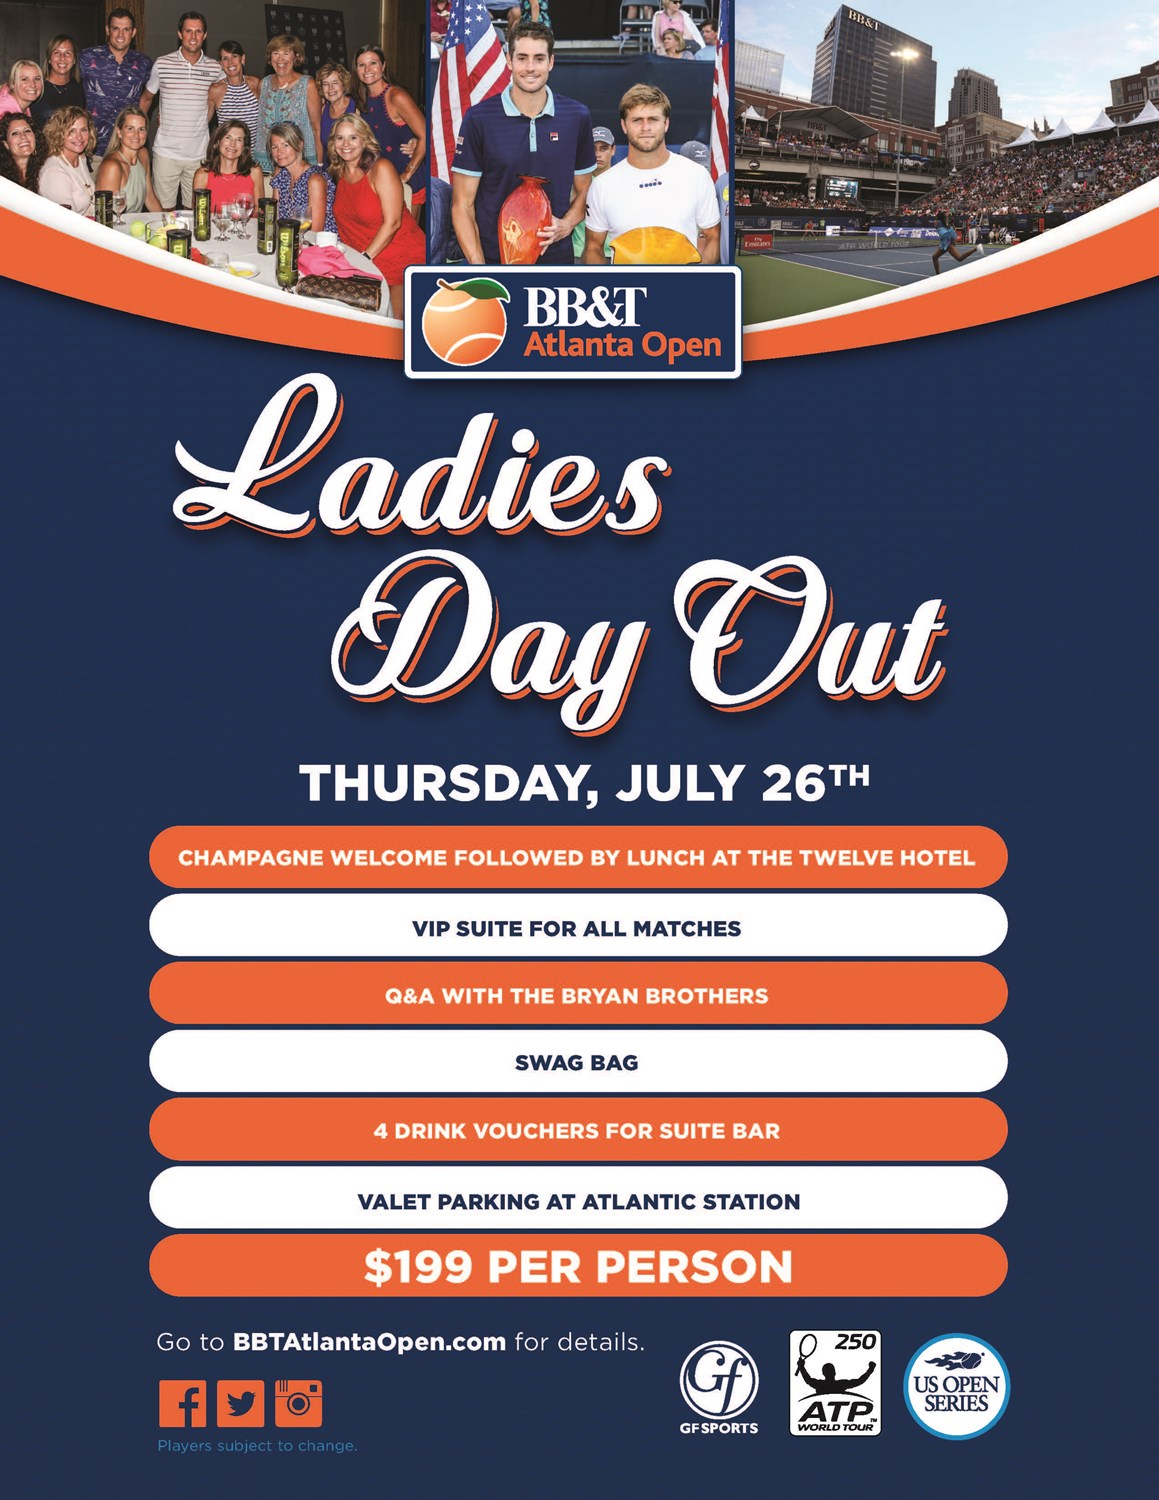 LadiesDay2018_Flyer_FINAL